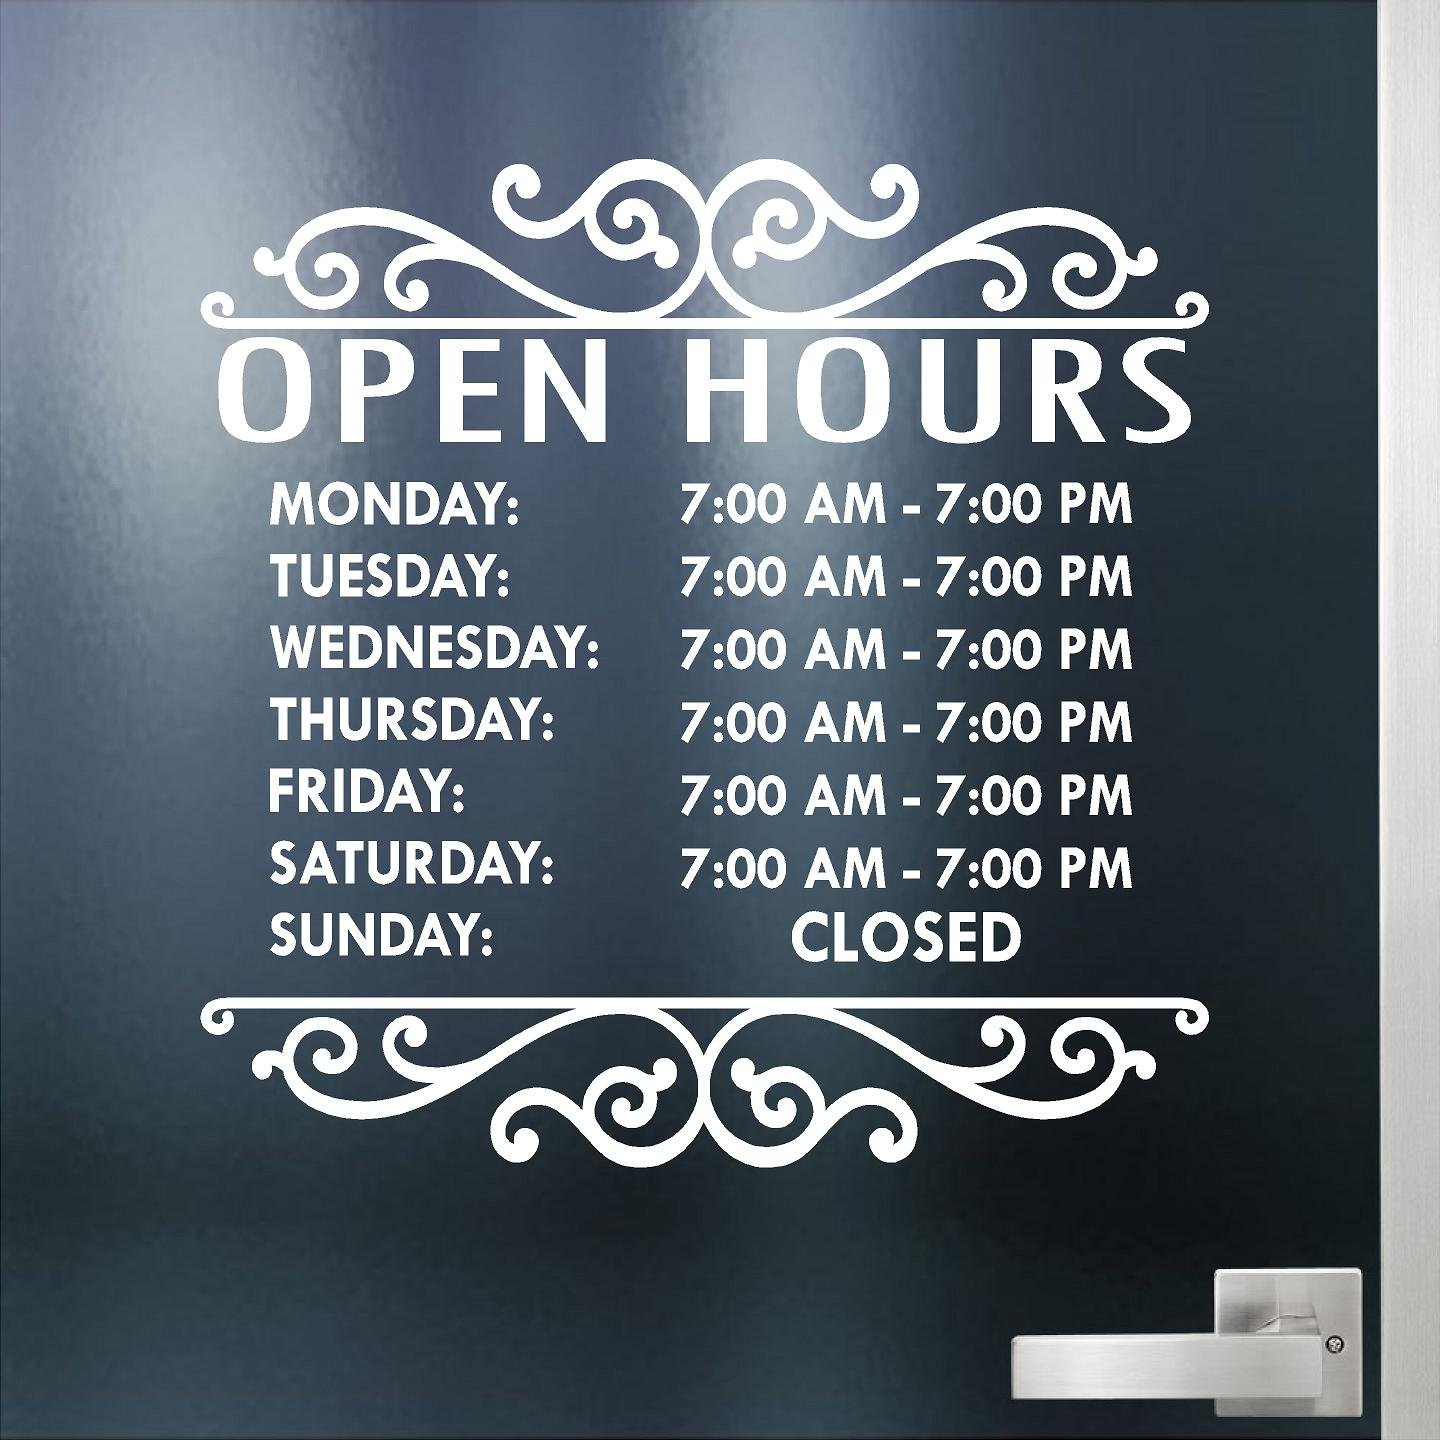 Glass Door Decals For Business.Custom Business Hours Sign For Glass Door Windows Smooth Surfaces Hours Of Operation Sign Open Closed Store Hours Sign 14 X 14 Style 2 By